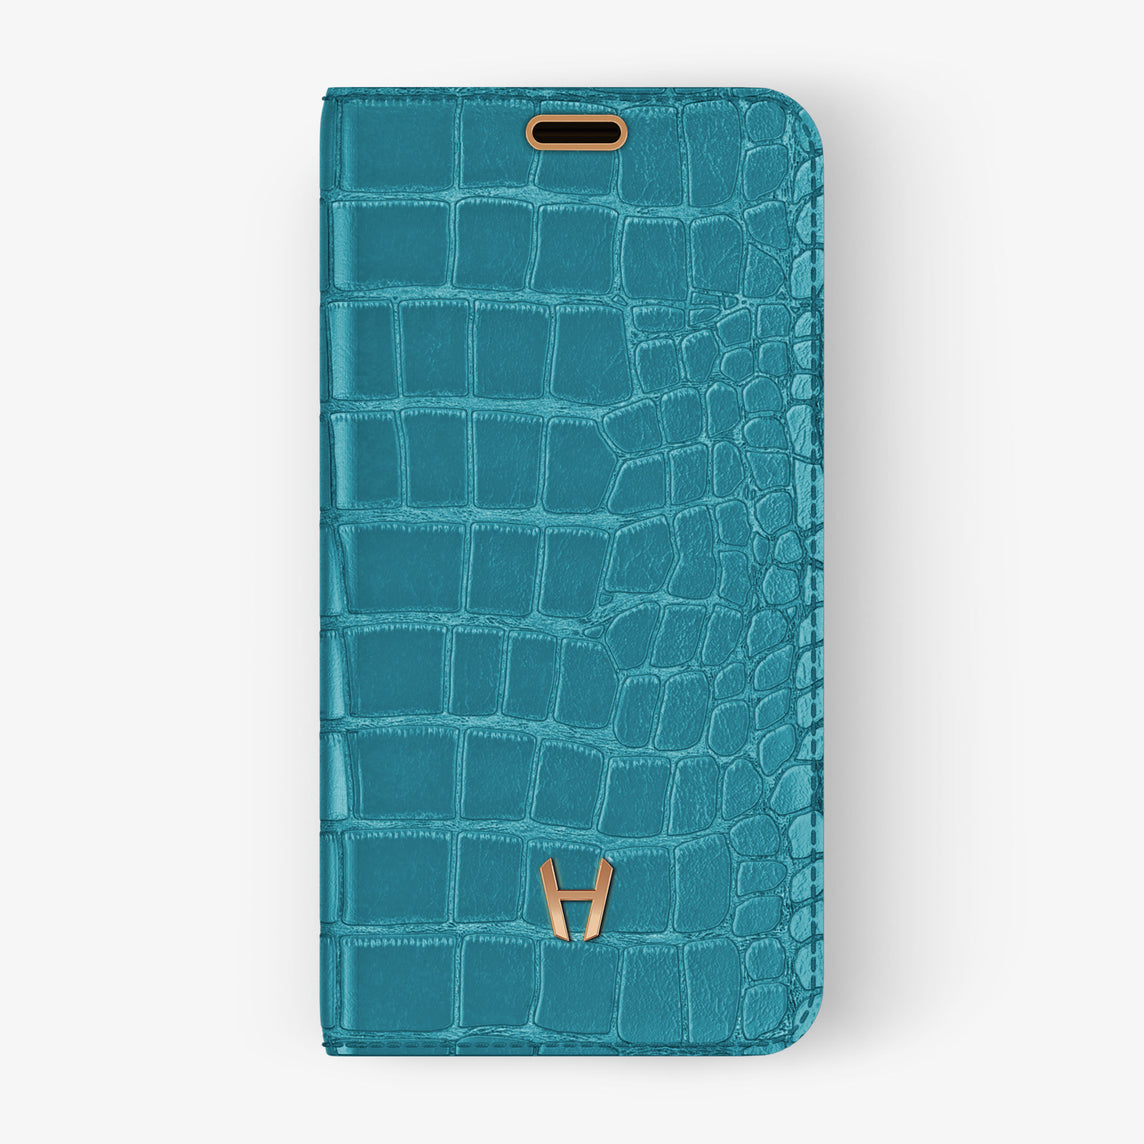 Alligator Folio Case iPhone 11 Pro | Blue Teal - Rose Gold